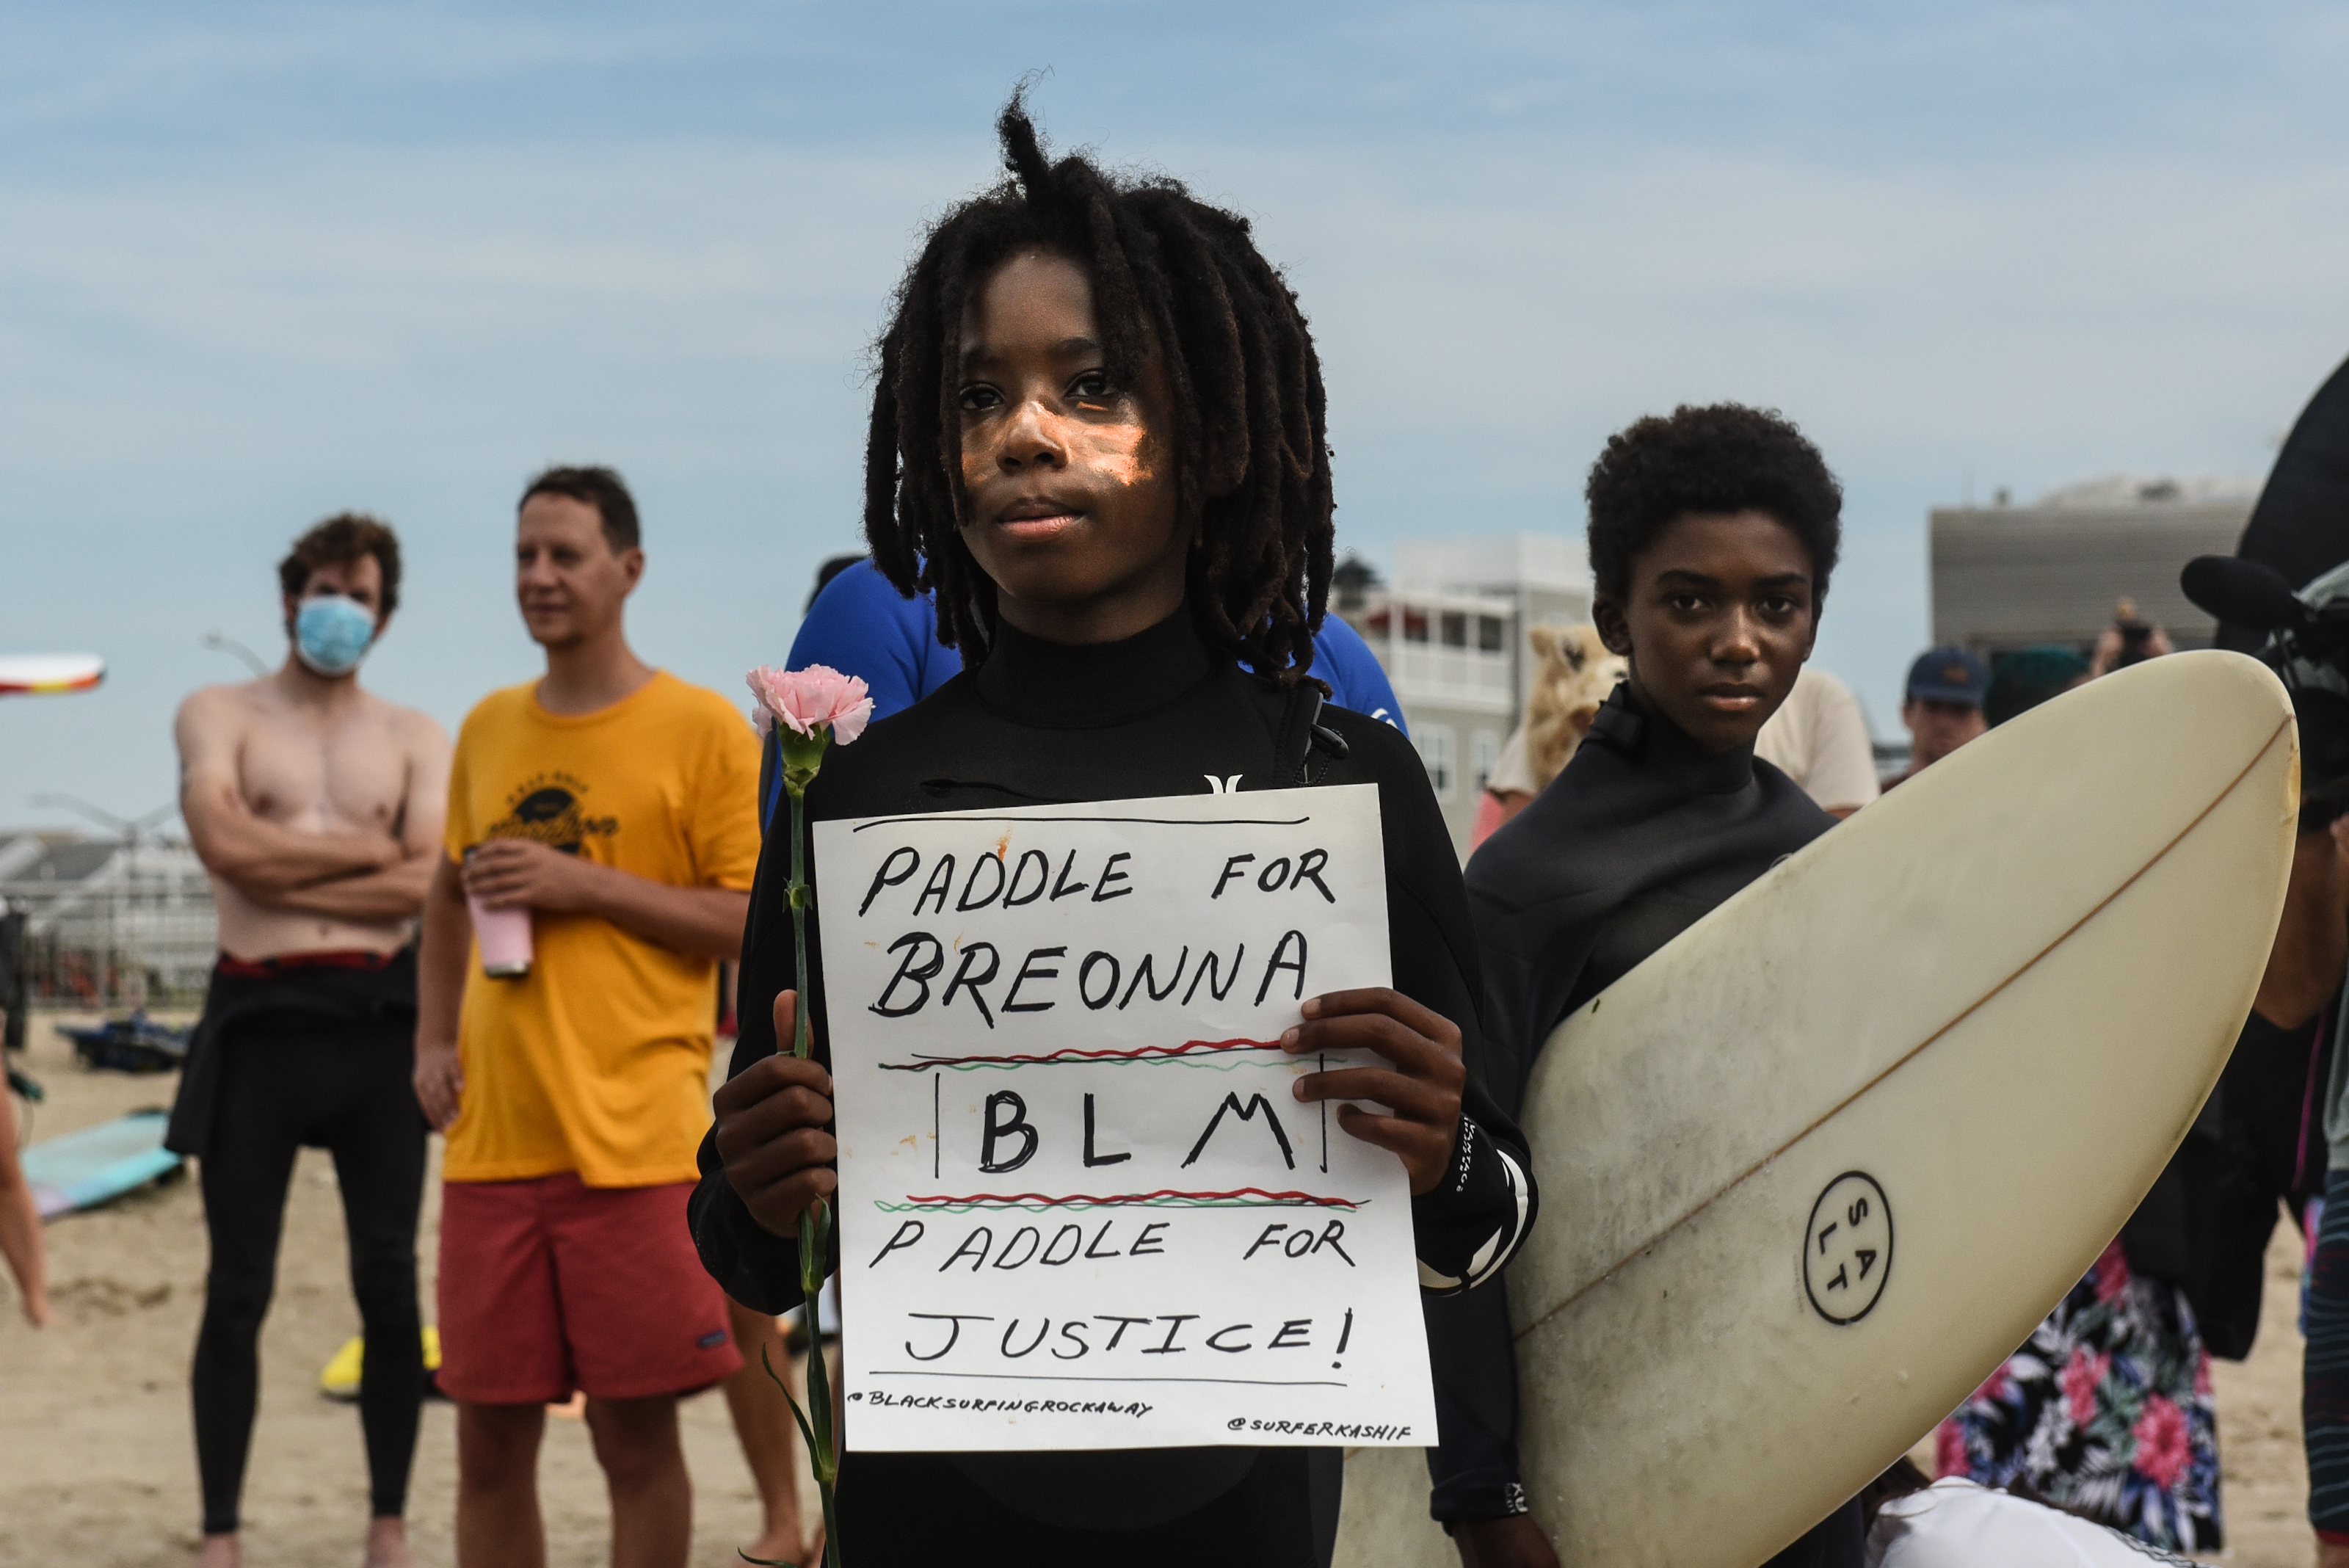 Paddle For Breonna Taylor